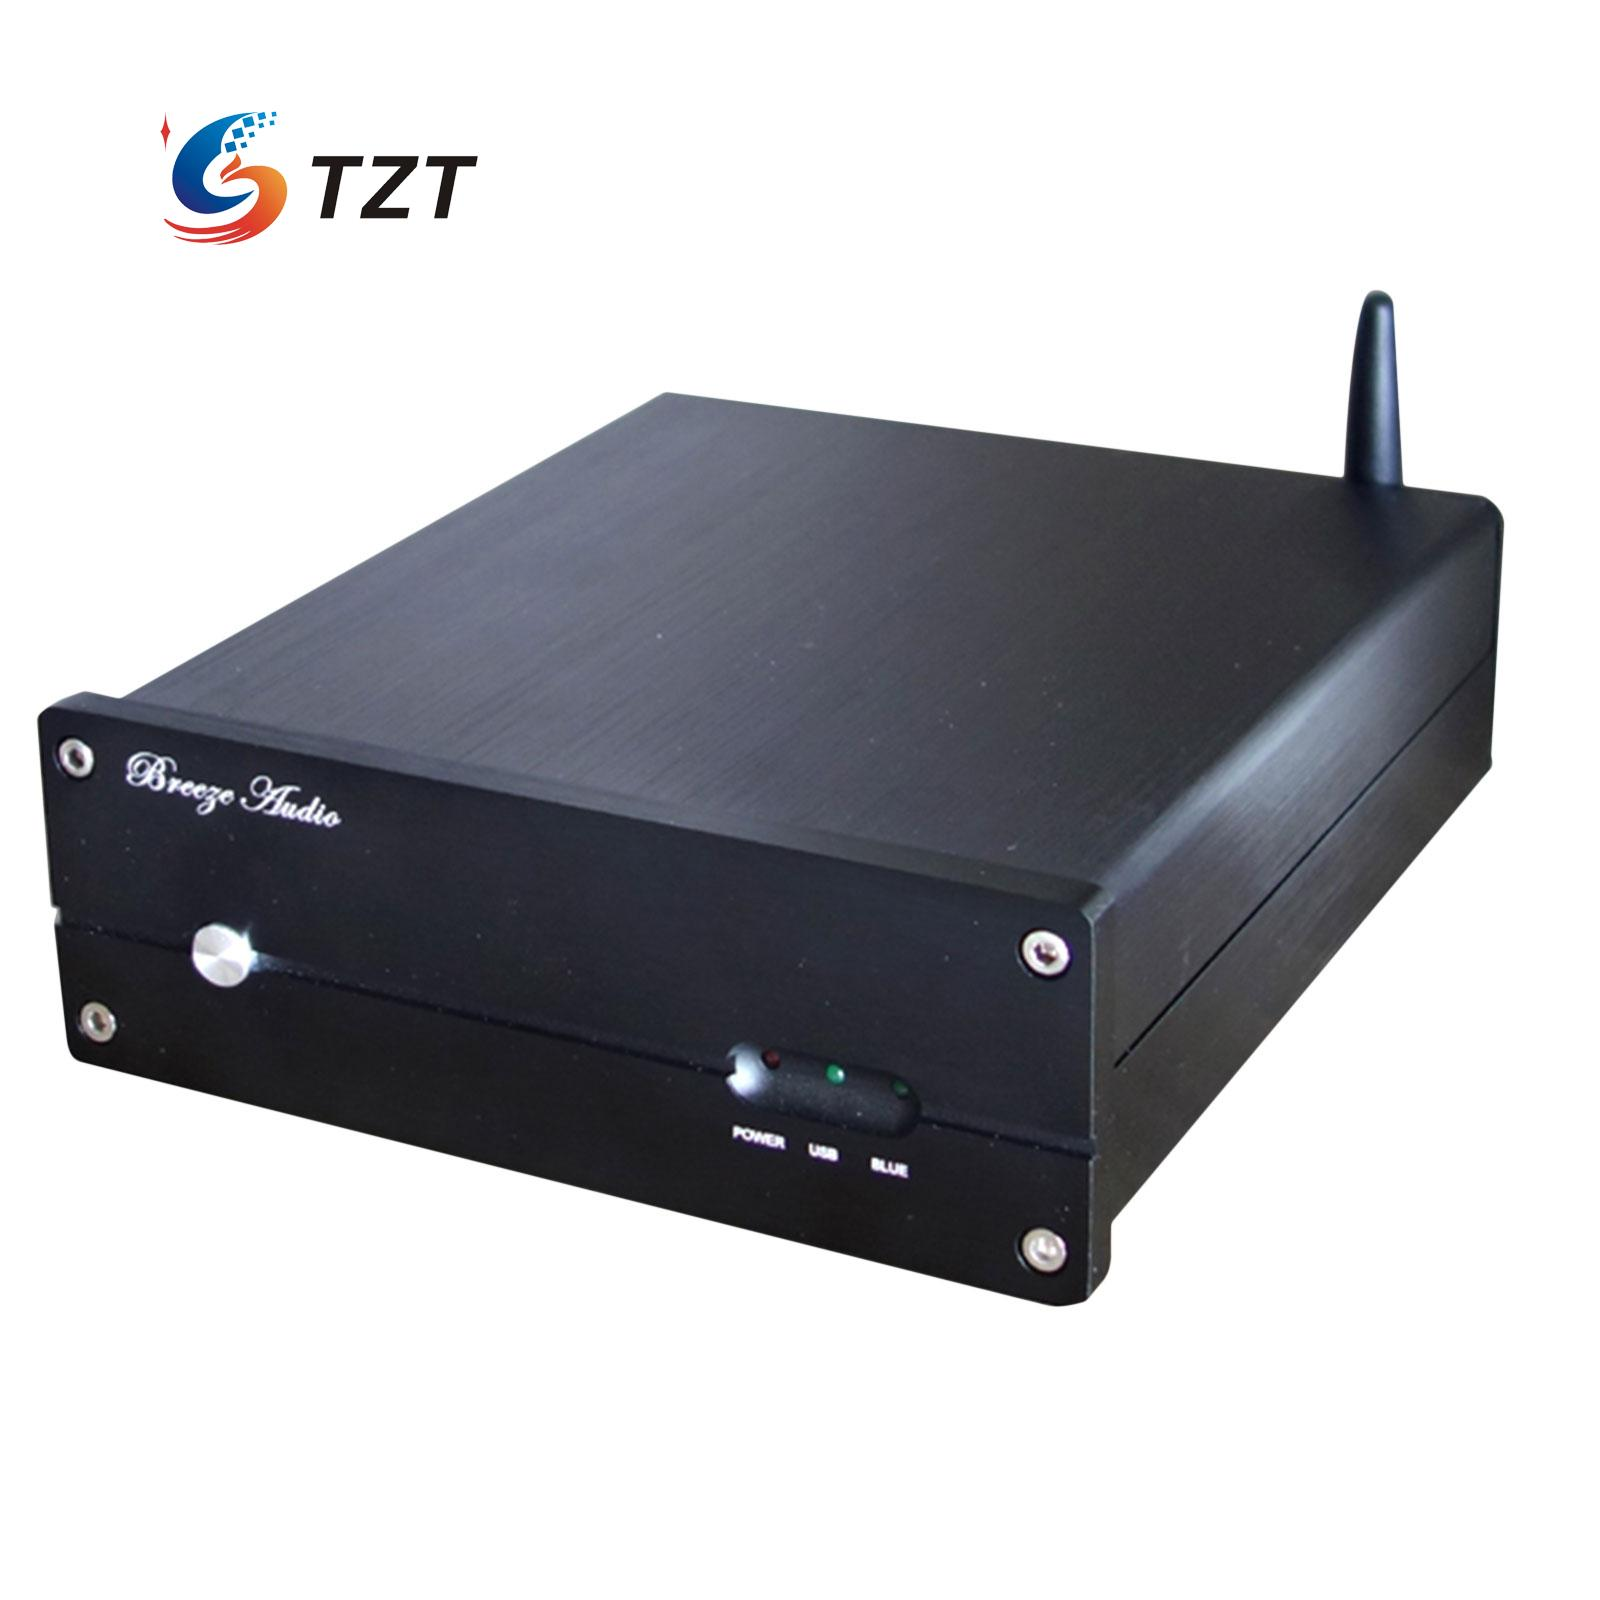 Breeze Audio SNY-20A Bluetooth Turntable USB Decoding ES9018K2M XMOS USB DAC Amplifier Support DSD 24 bit /192khz breeze audio dsd usb dac es9018k2m xmos u8 op275 2 lm49860 class a earphone decoder i2s dsd usb audio amplifier amp